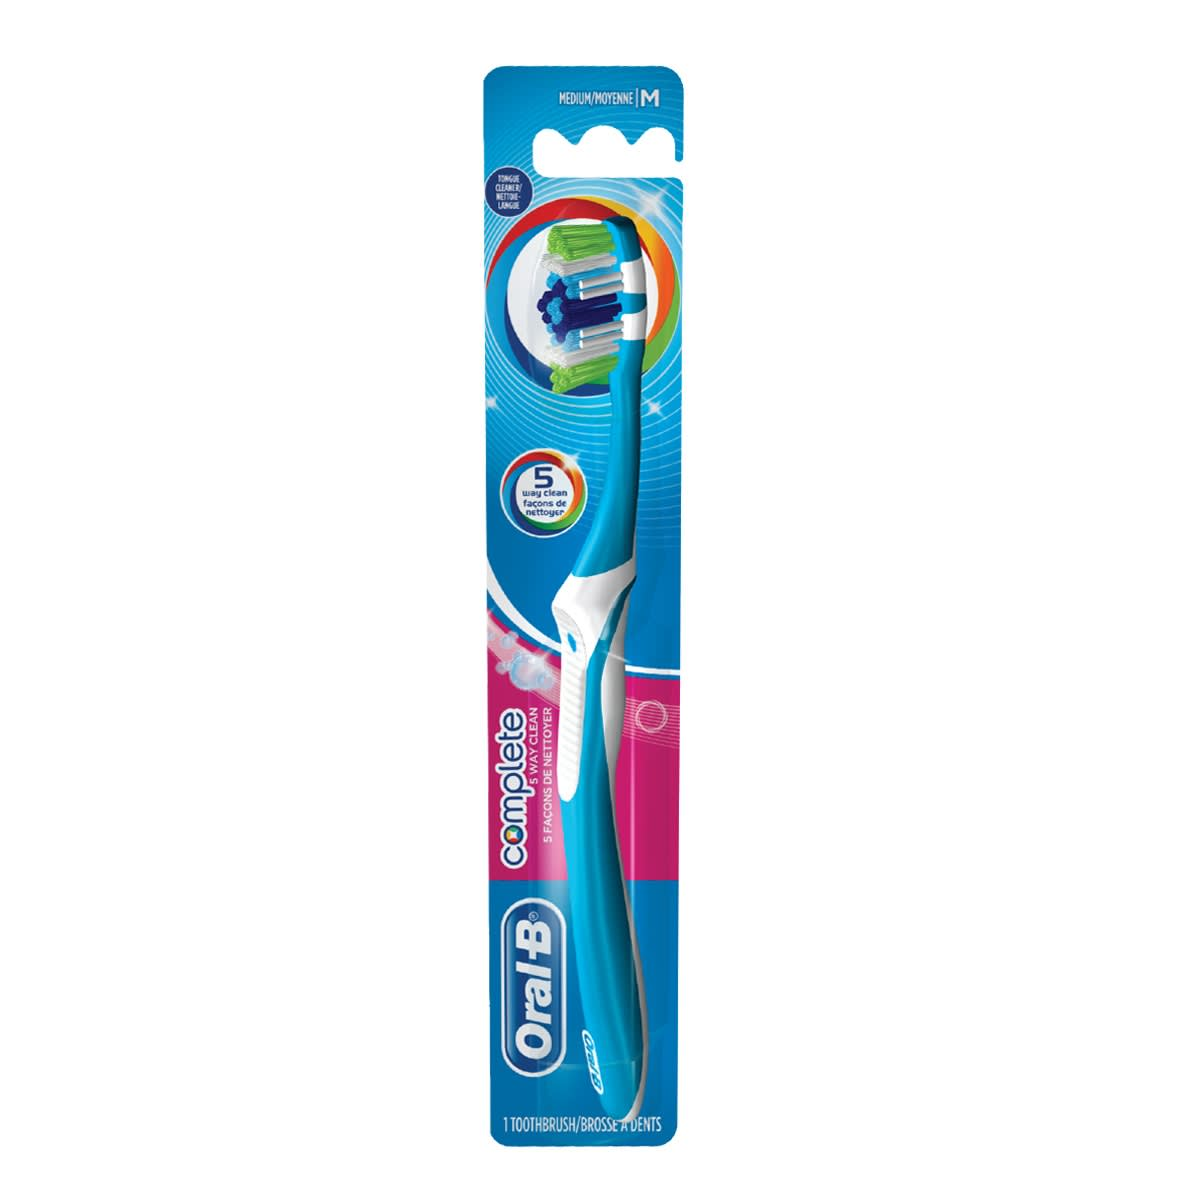 Oral-B 5 Way Clean Manual Toothbrush